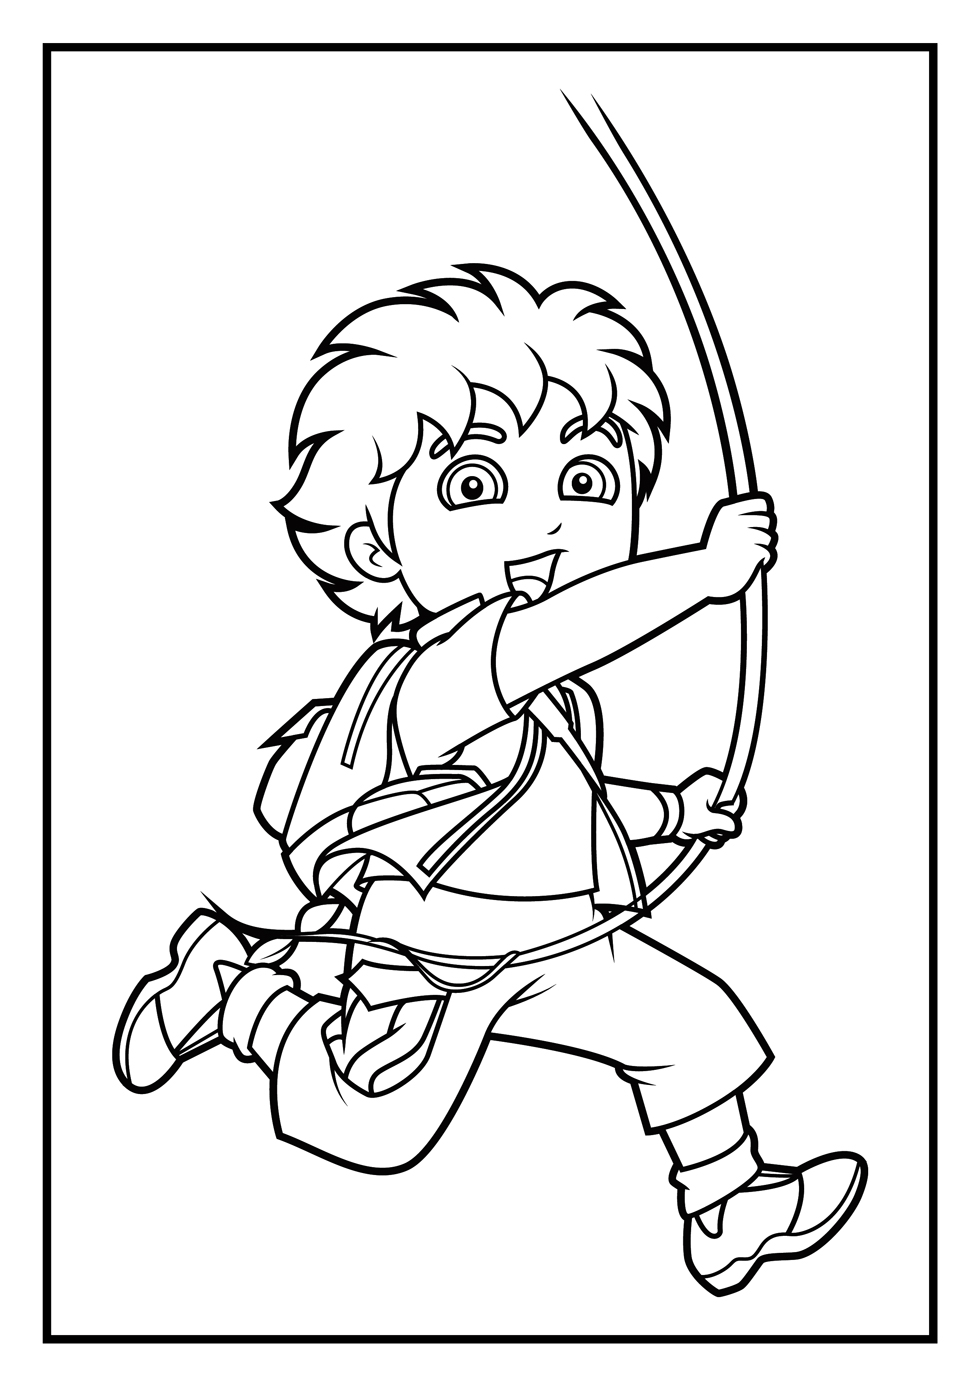 deigo coloring pages - photo#35